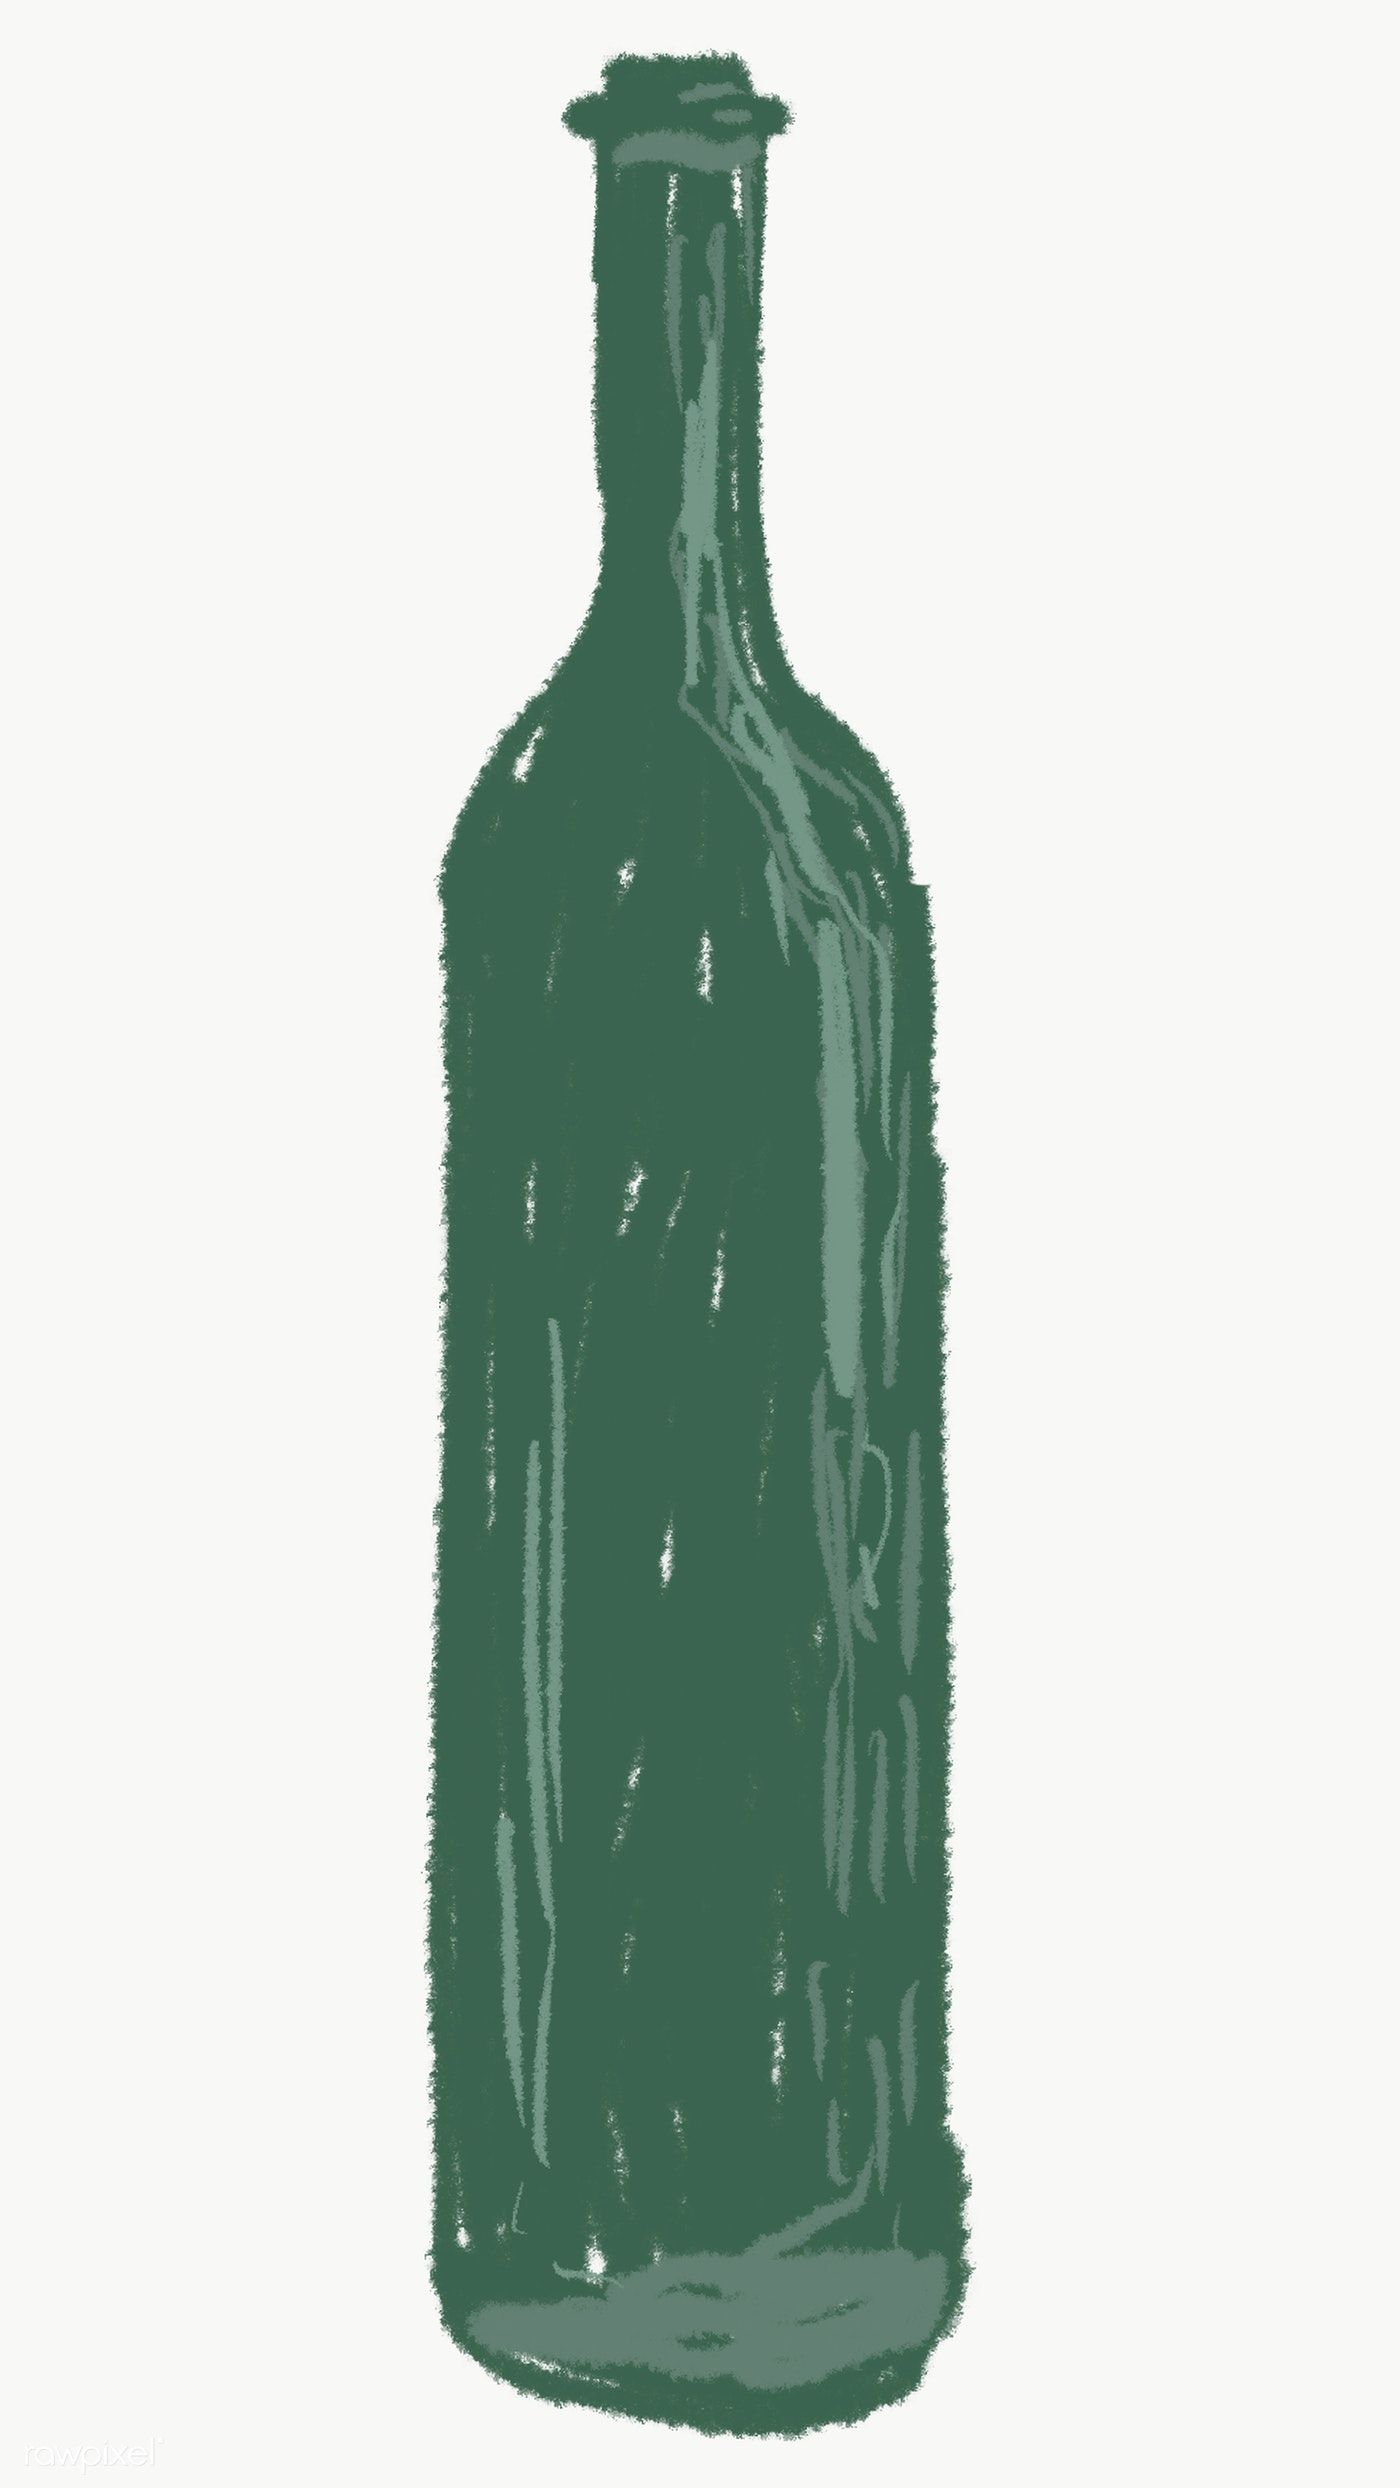 Green Glass Bottle Element Transparent Png Free Image By Rawpixel Com Sasi Green Glass Bottles Green Glass Brown Glass Bottles